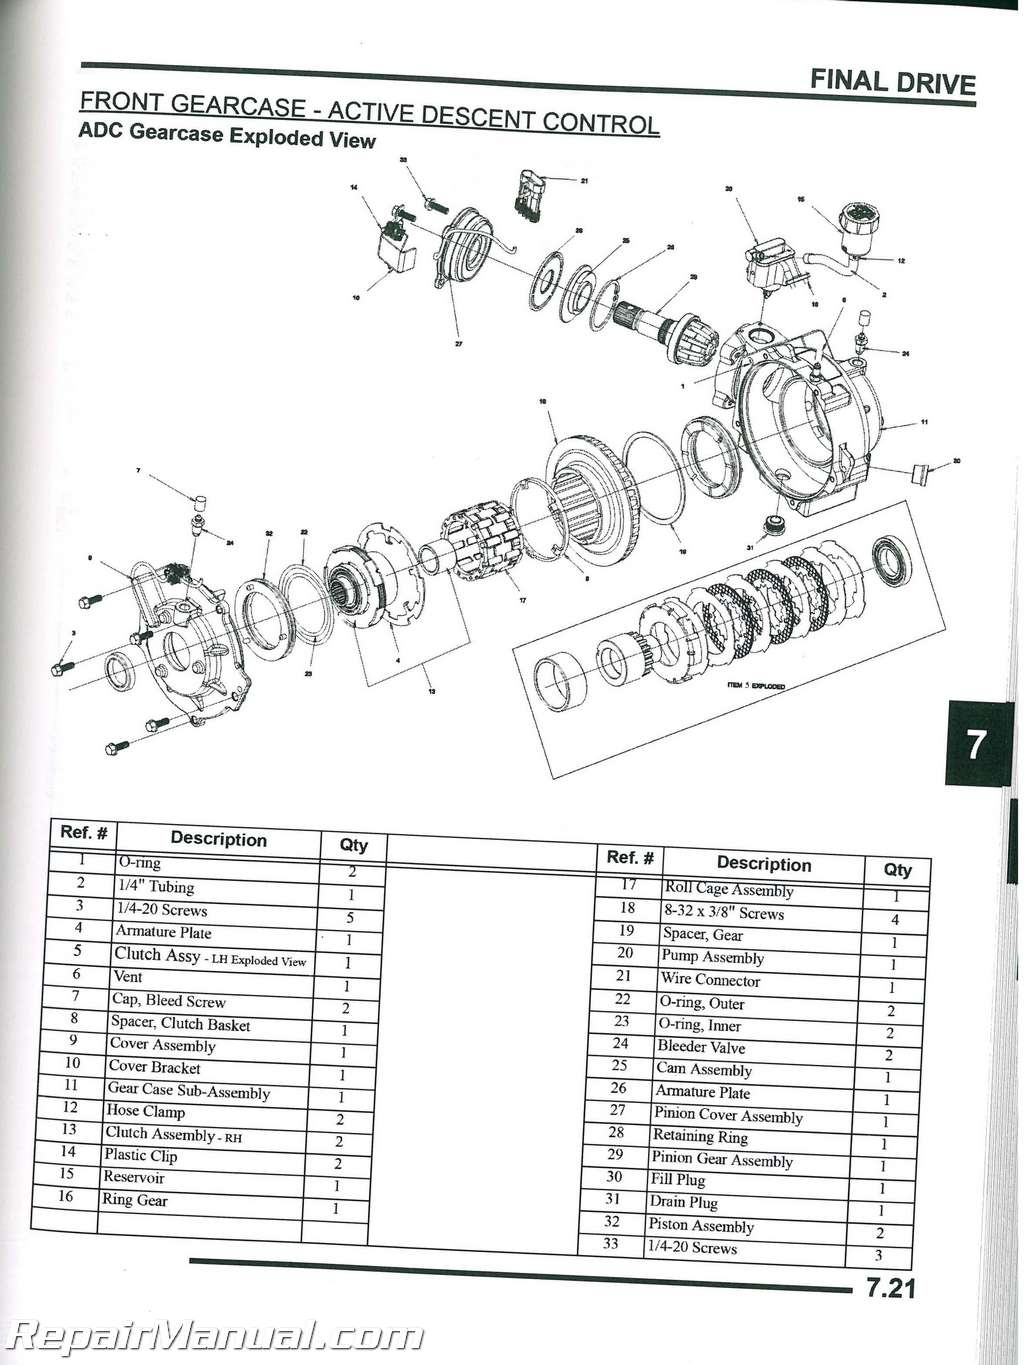 2000 Polaris Sportsman 500 Manual Wiring Diagram Pdf Straight Computer About Major Repairs Outlined Be Performed Only Certified Master Dealer Msd Technician Video Related Handlebar Control User Manuals